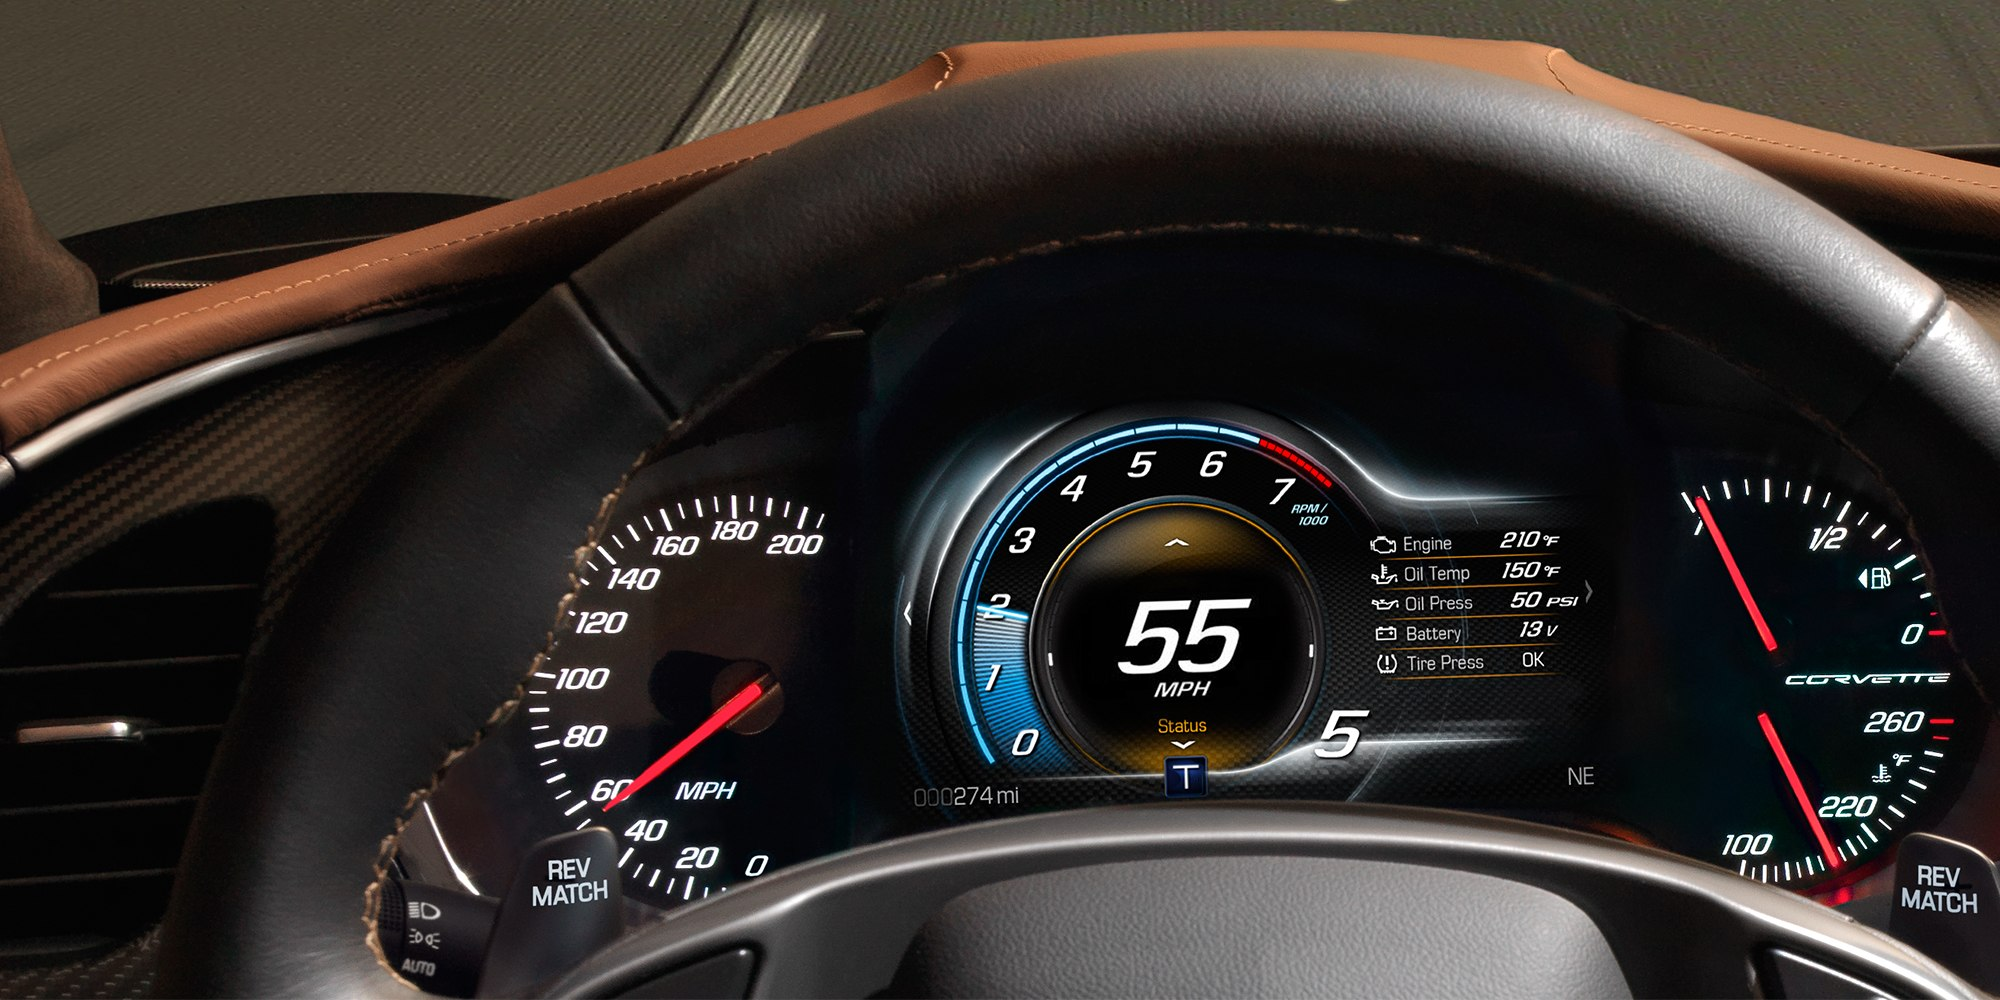 2019 Chevrolet Corvette Heads-Up Display